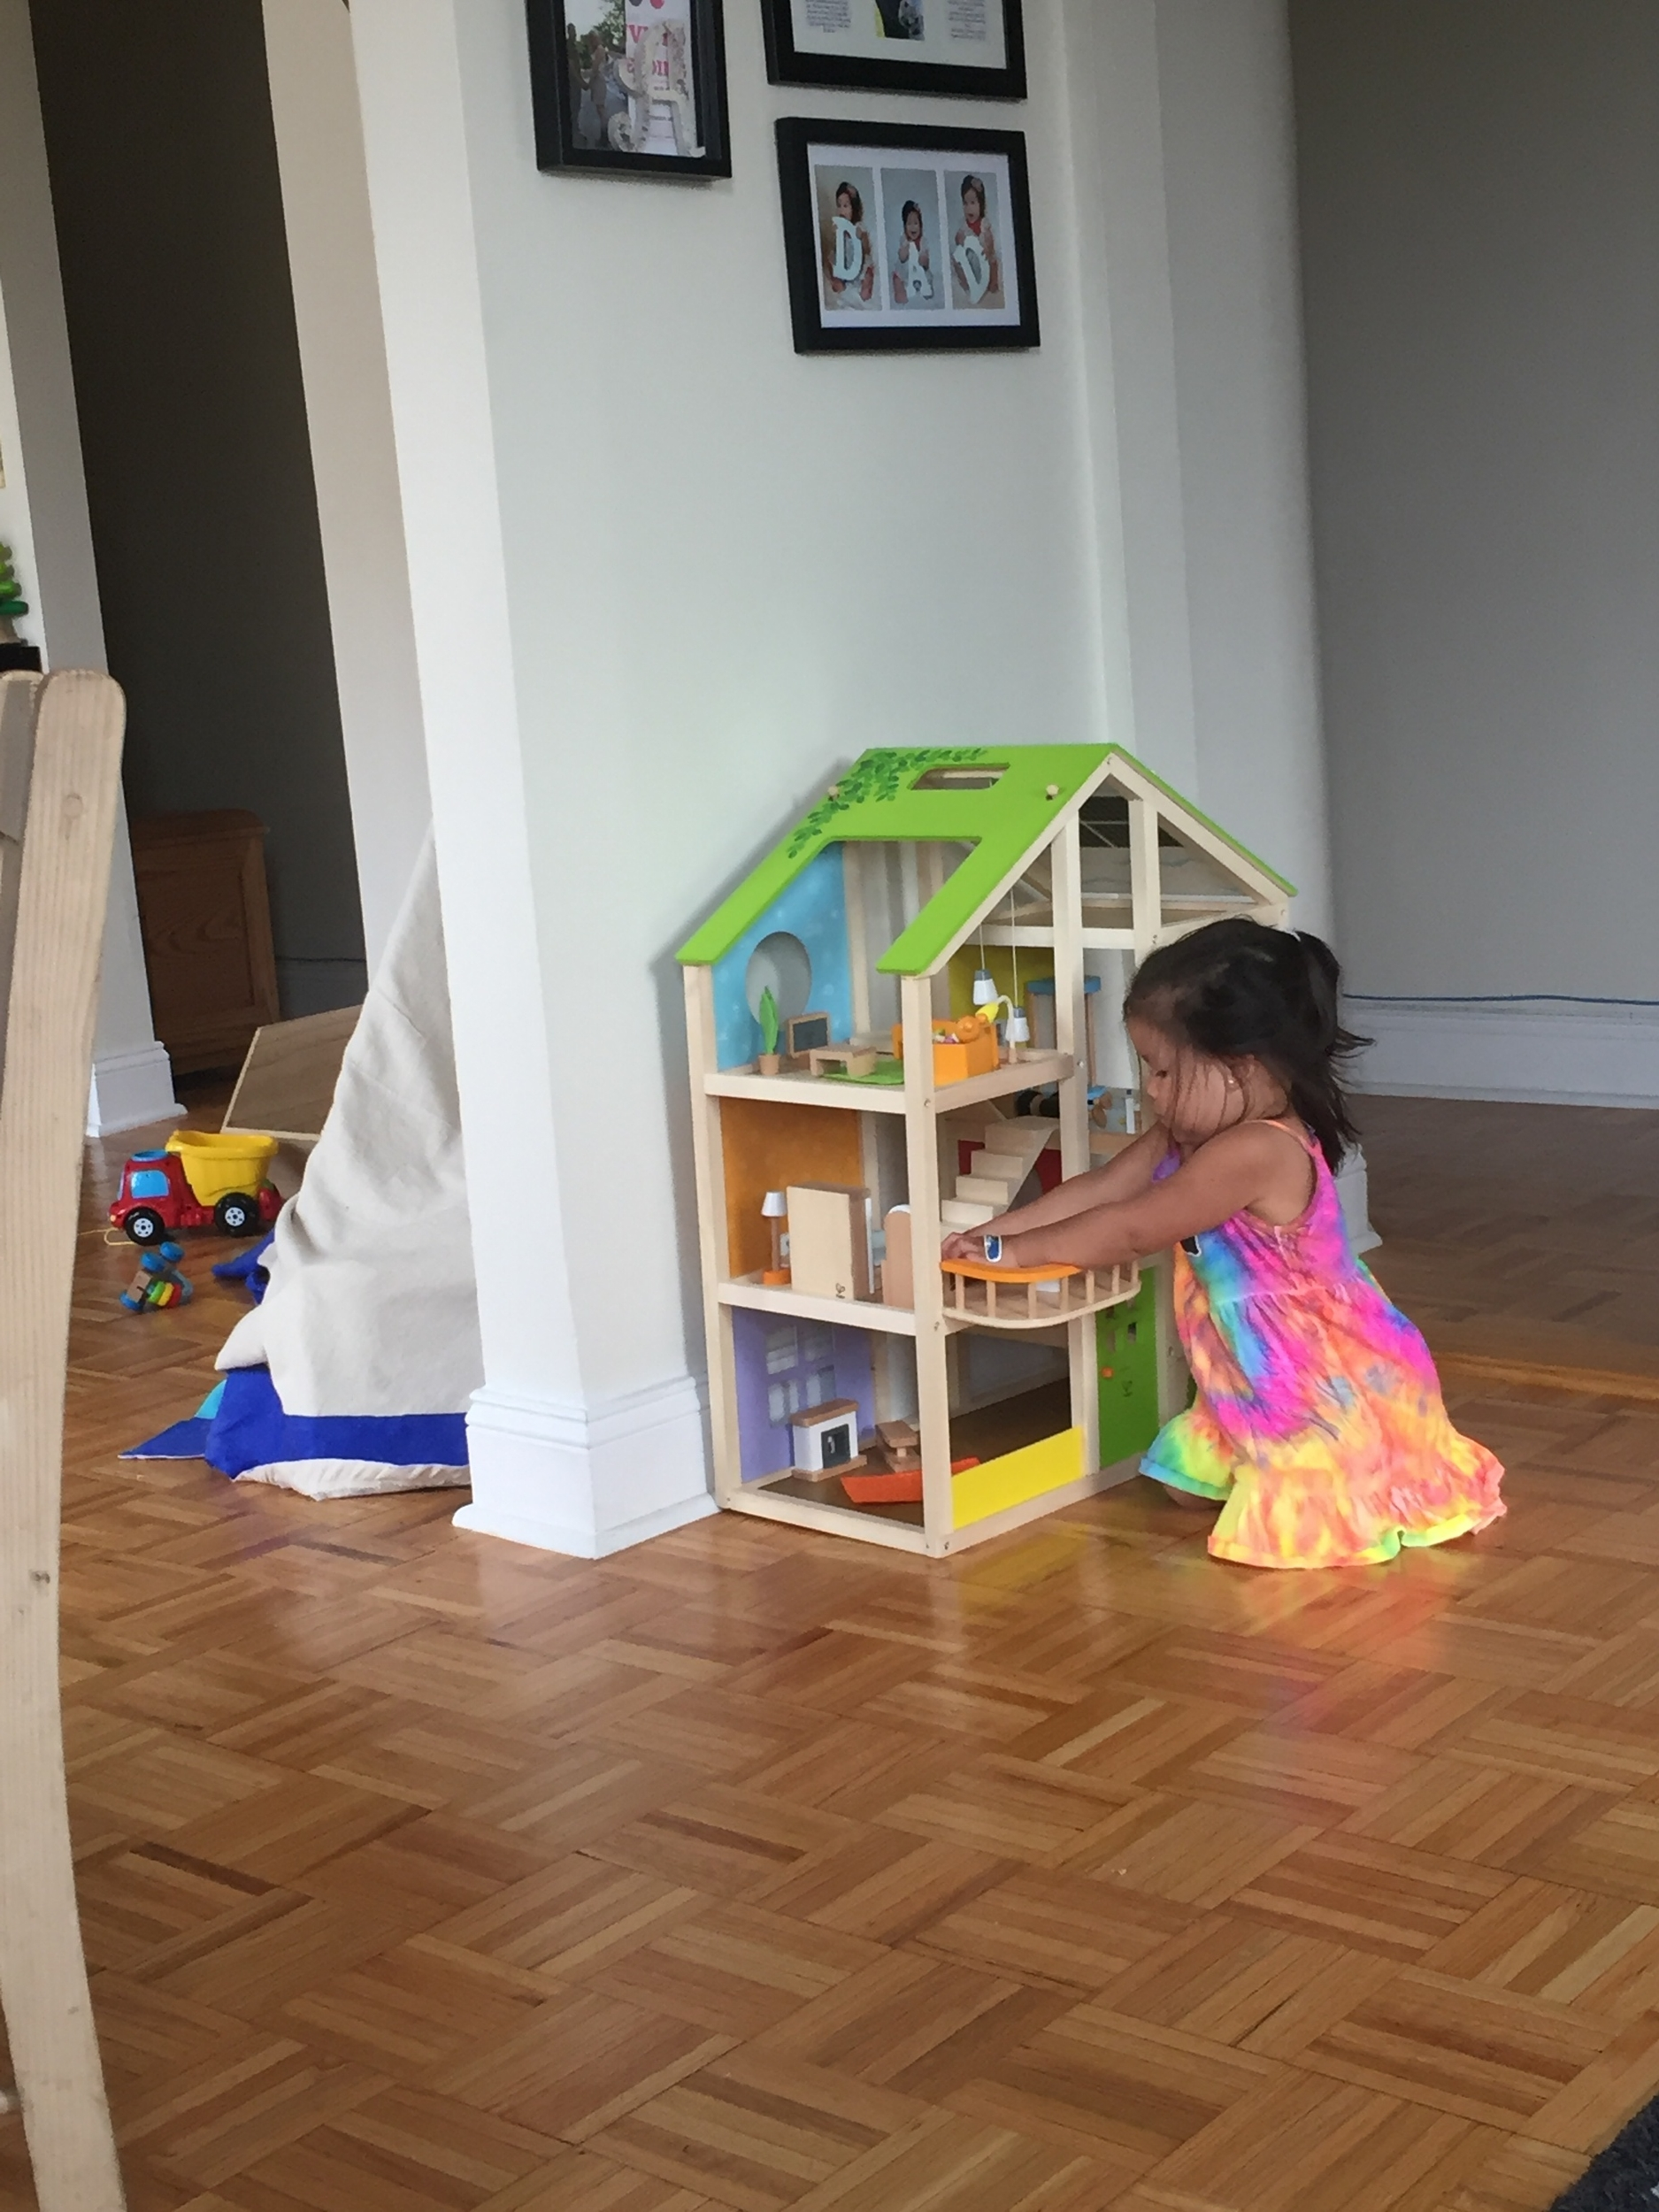 New doll house!